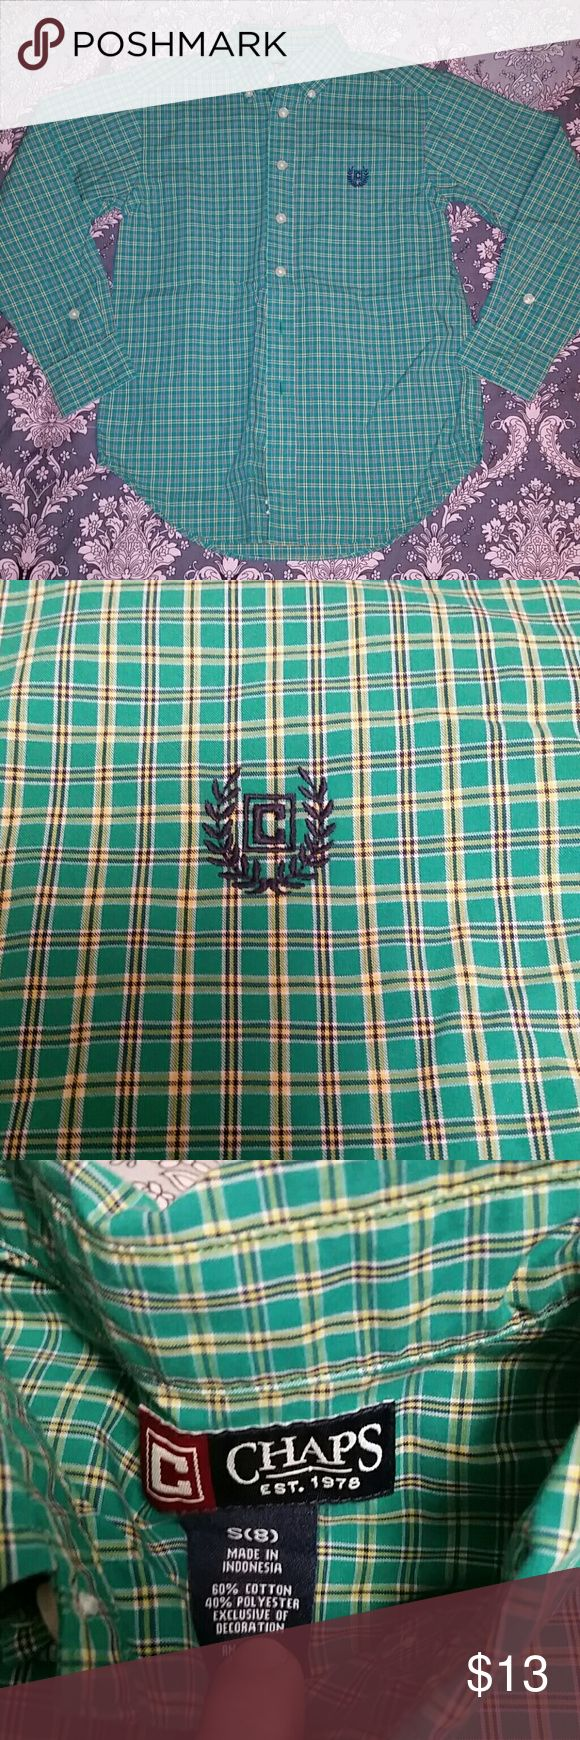 Chaps Ralph Lauren Green Plaid Button Down shirt Boys Chaps Ralph Lauren Green Plaid Button Down shirt. Green, pale yellow and Navy tight plaid pattern. New Without Tags Chaps Shirts & Tops Button Down Shirts